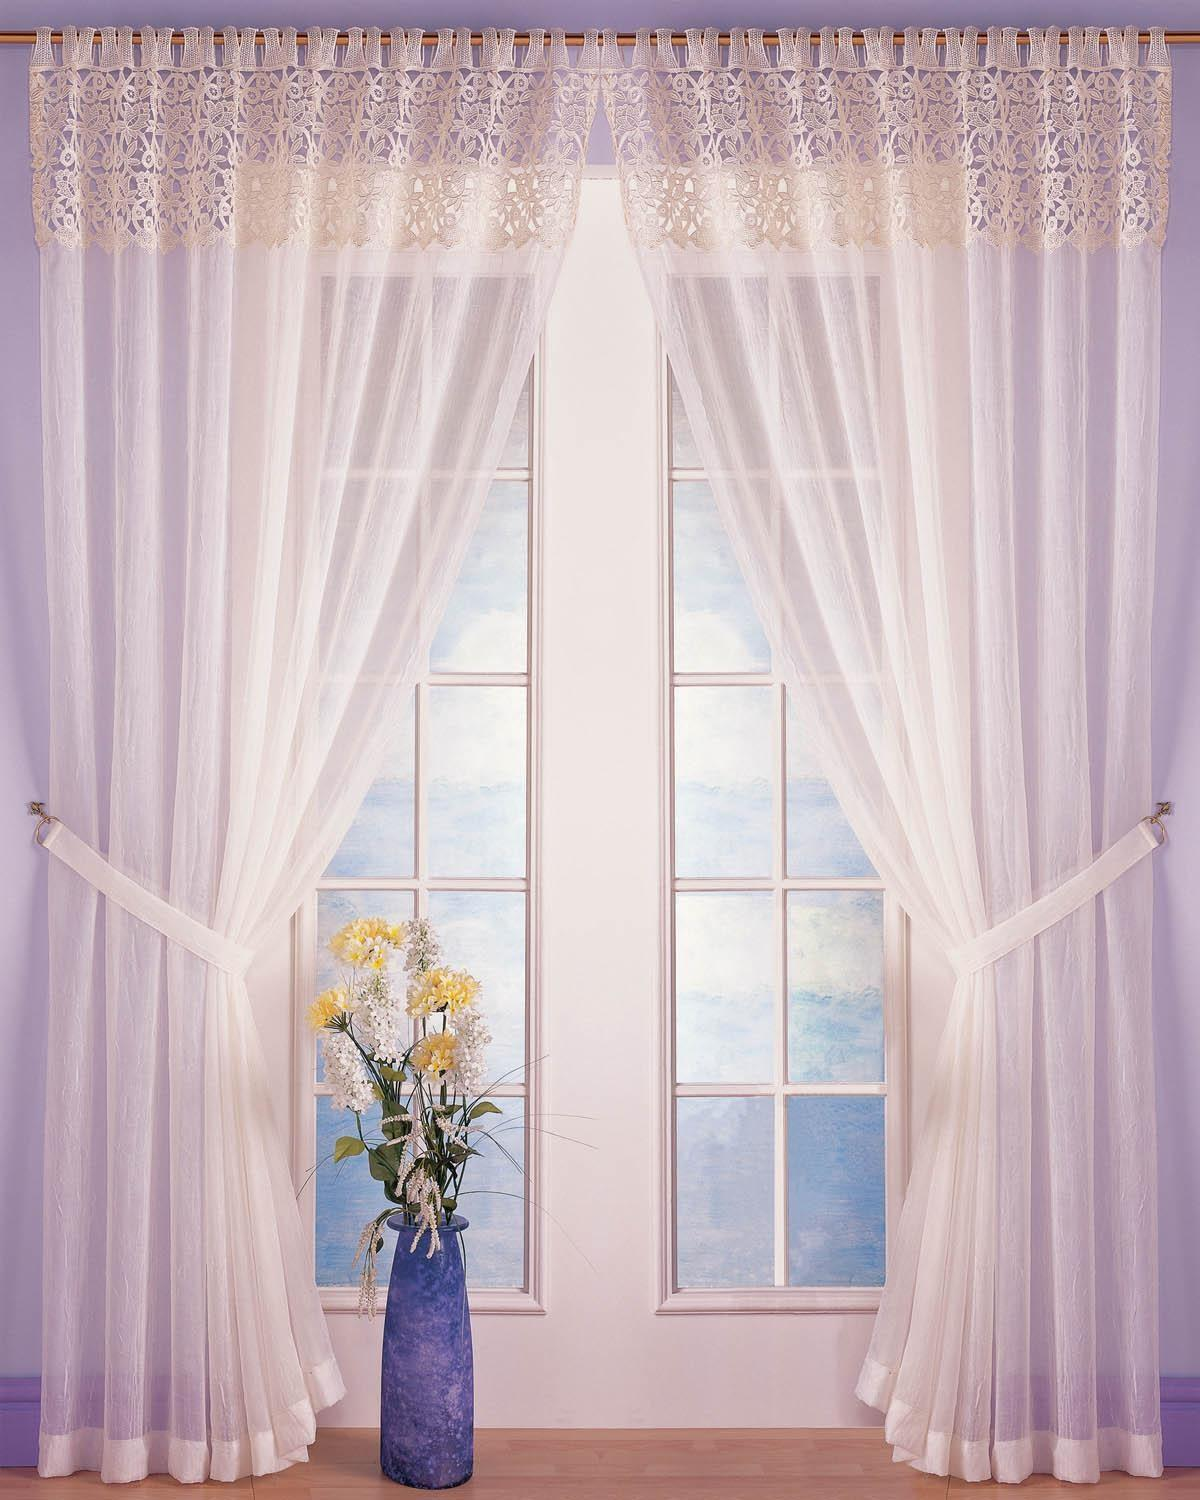 Shop Beautiful Curtains Range Styles